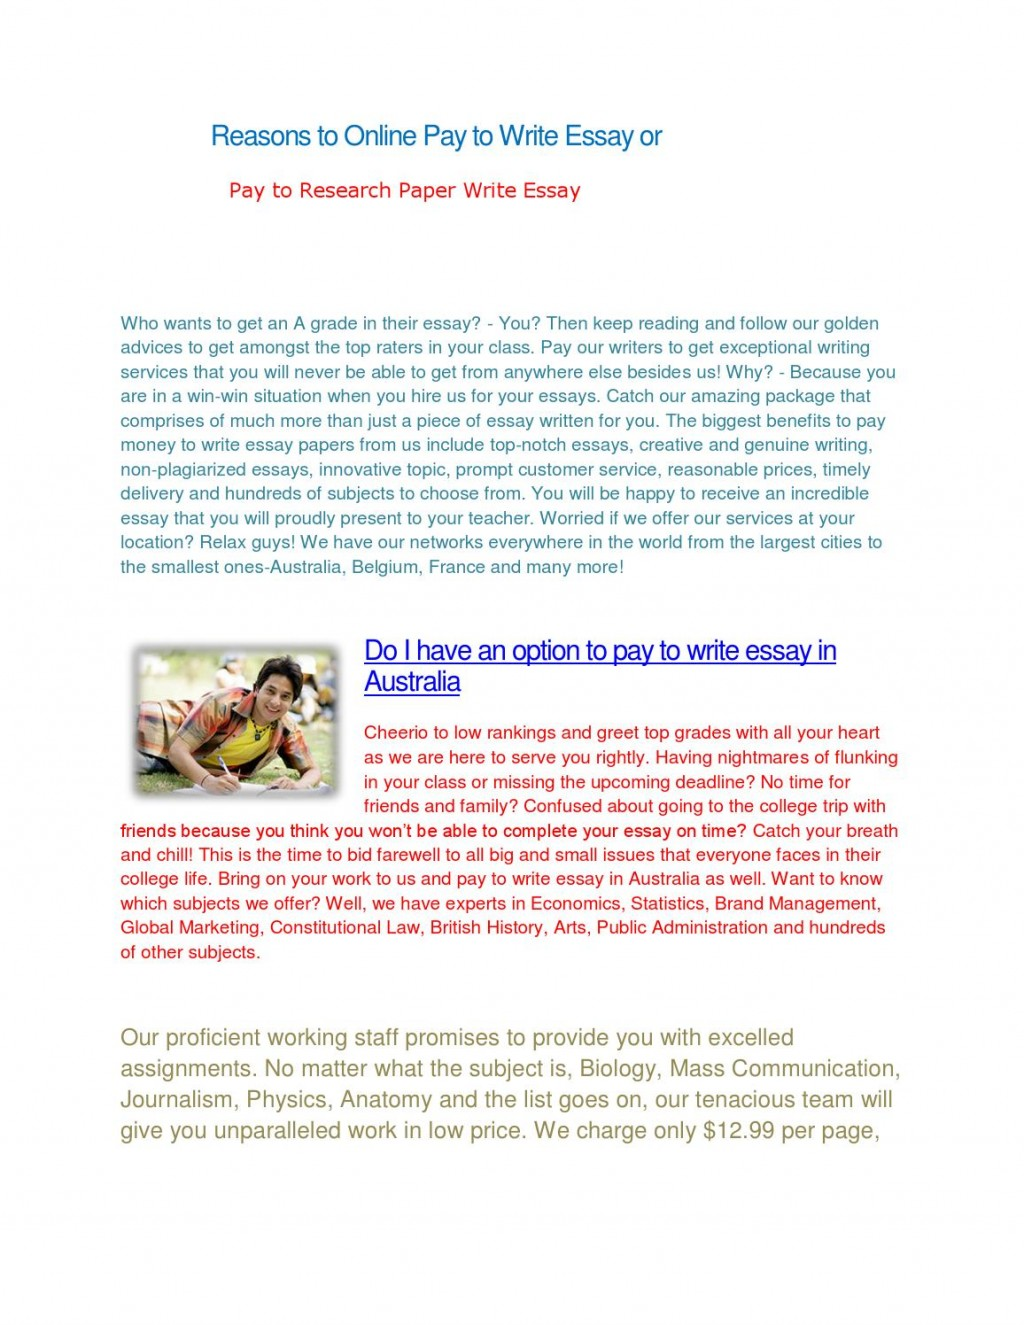 010 Research Paper Pay For Page 1 Excellent Equal Work In India Performance Writing Large